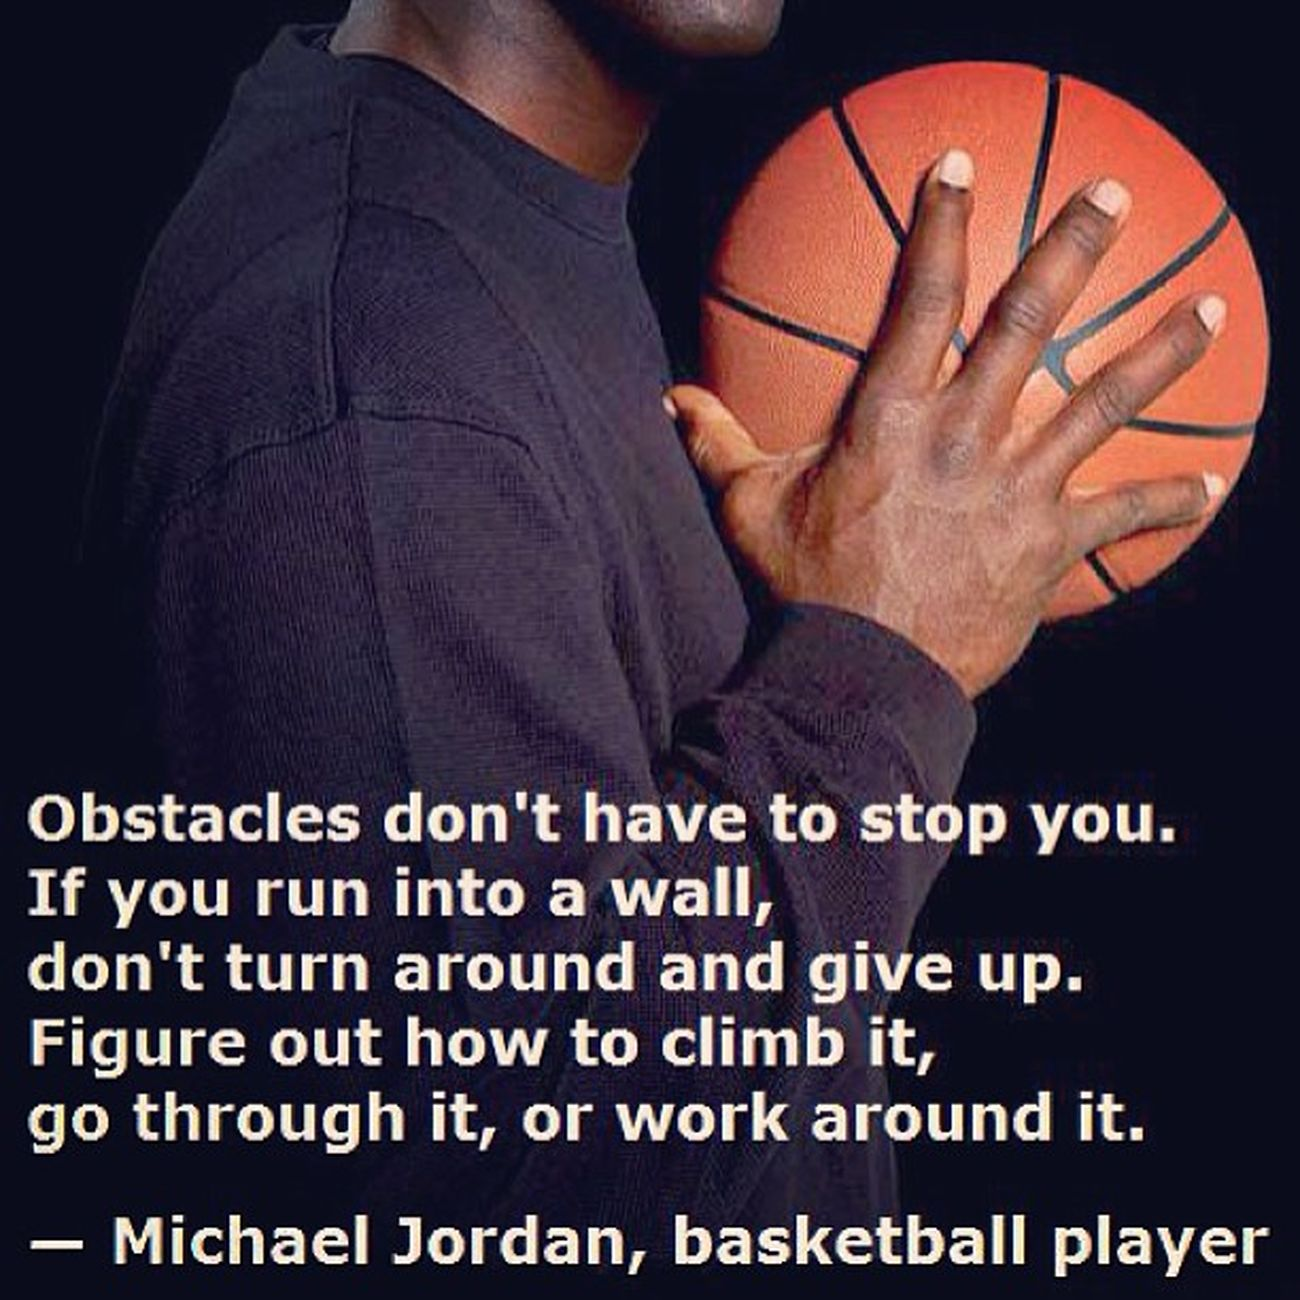 Quote Basketball Player Michaeljordan orange inspiration roadblock nevergiveup alwaysaway toughitout sports gothroughit workaroundit climbit keepgoing customized designs online business entrepreneur jimbosports established 2005